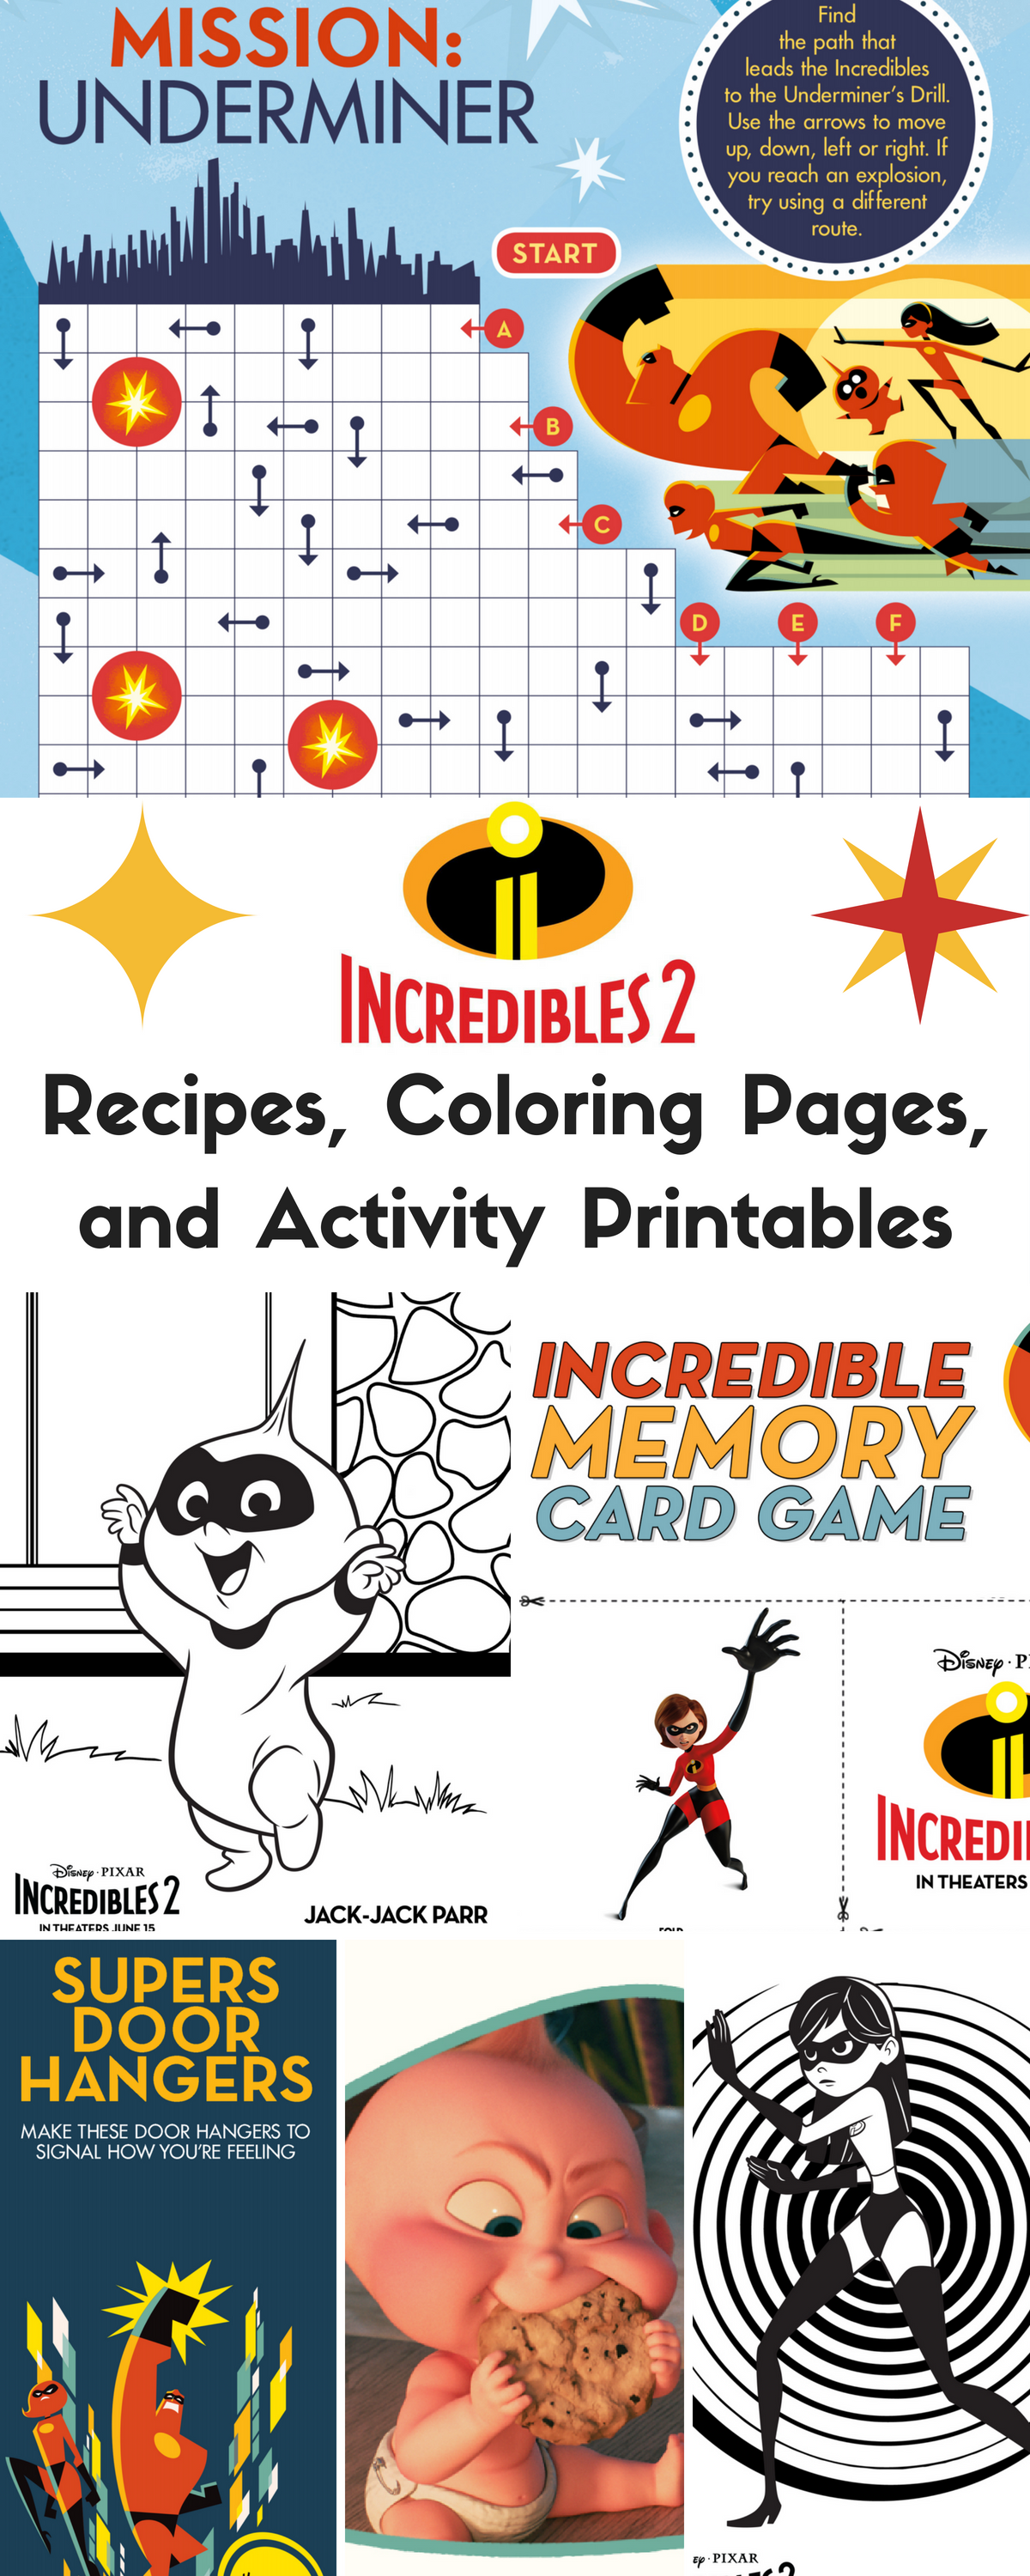 Incredibles 2 Recipes Coloring Pages And Activity Printables Disney Activities Disney Crafts For Kids Kids Activity Books